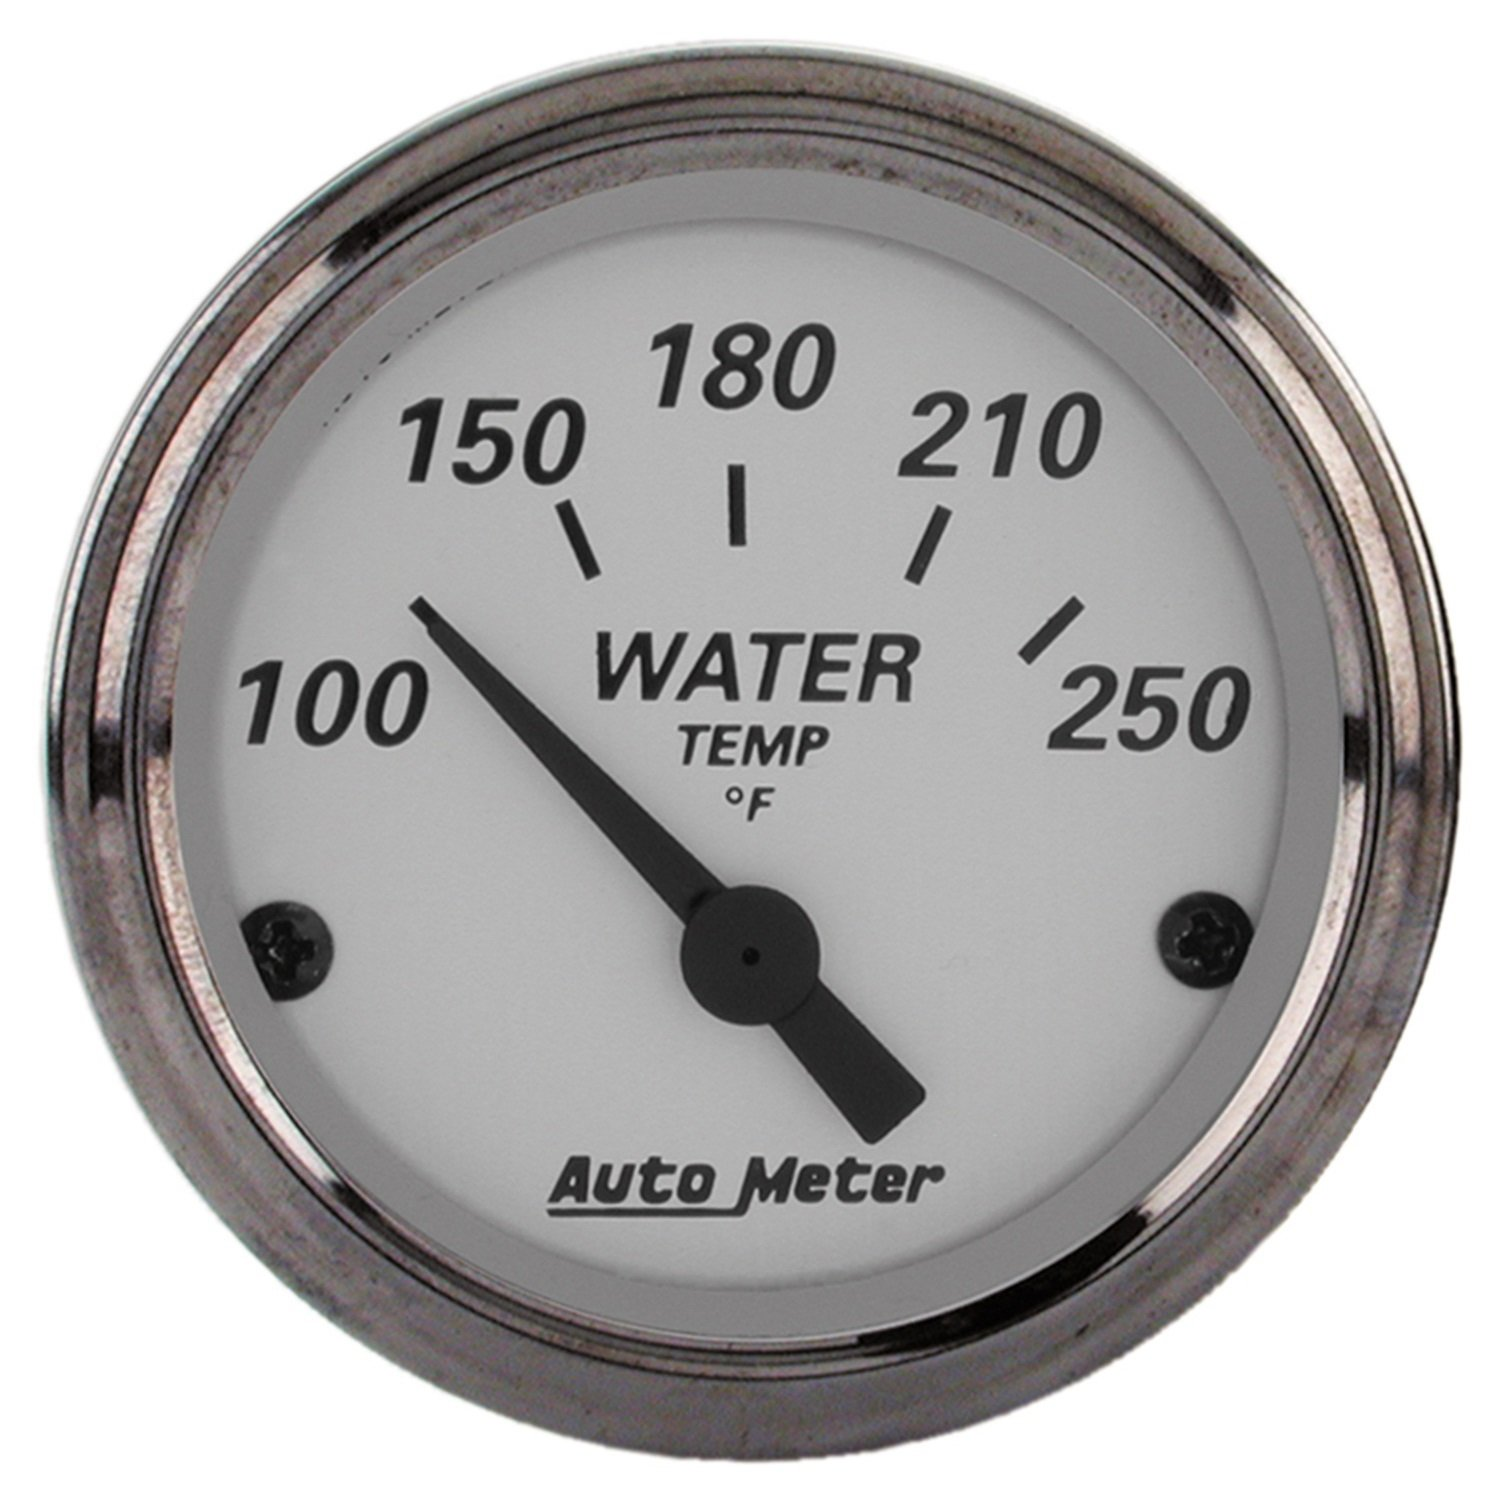 AUTO METER 1938 American Platinum Electric Water Temperature Gauge by AUTO METER